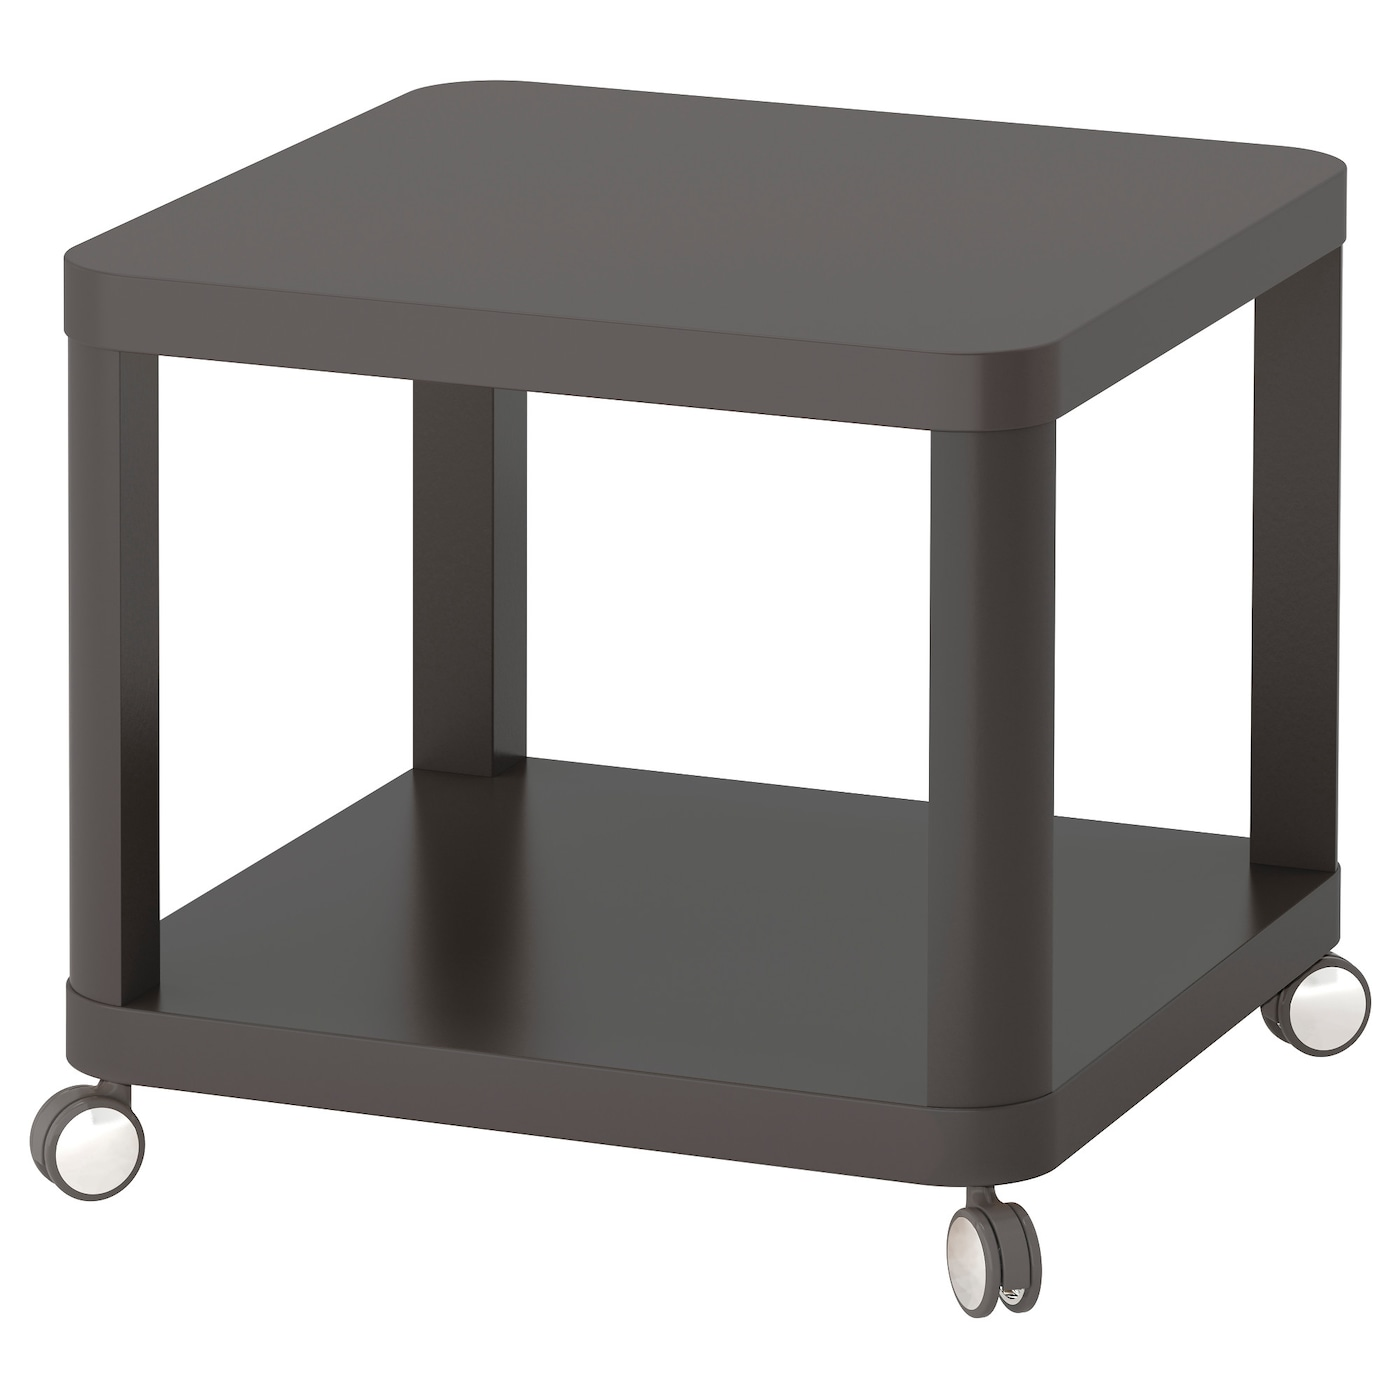 tingby desserte roulante gris 50 x 50 cm ikea. Black Bedroom Furniture Sets. Home Design Ideas